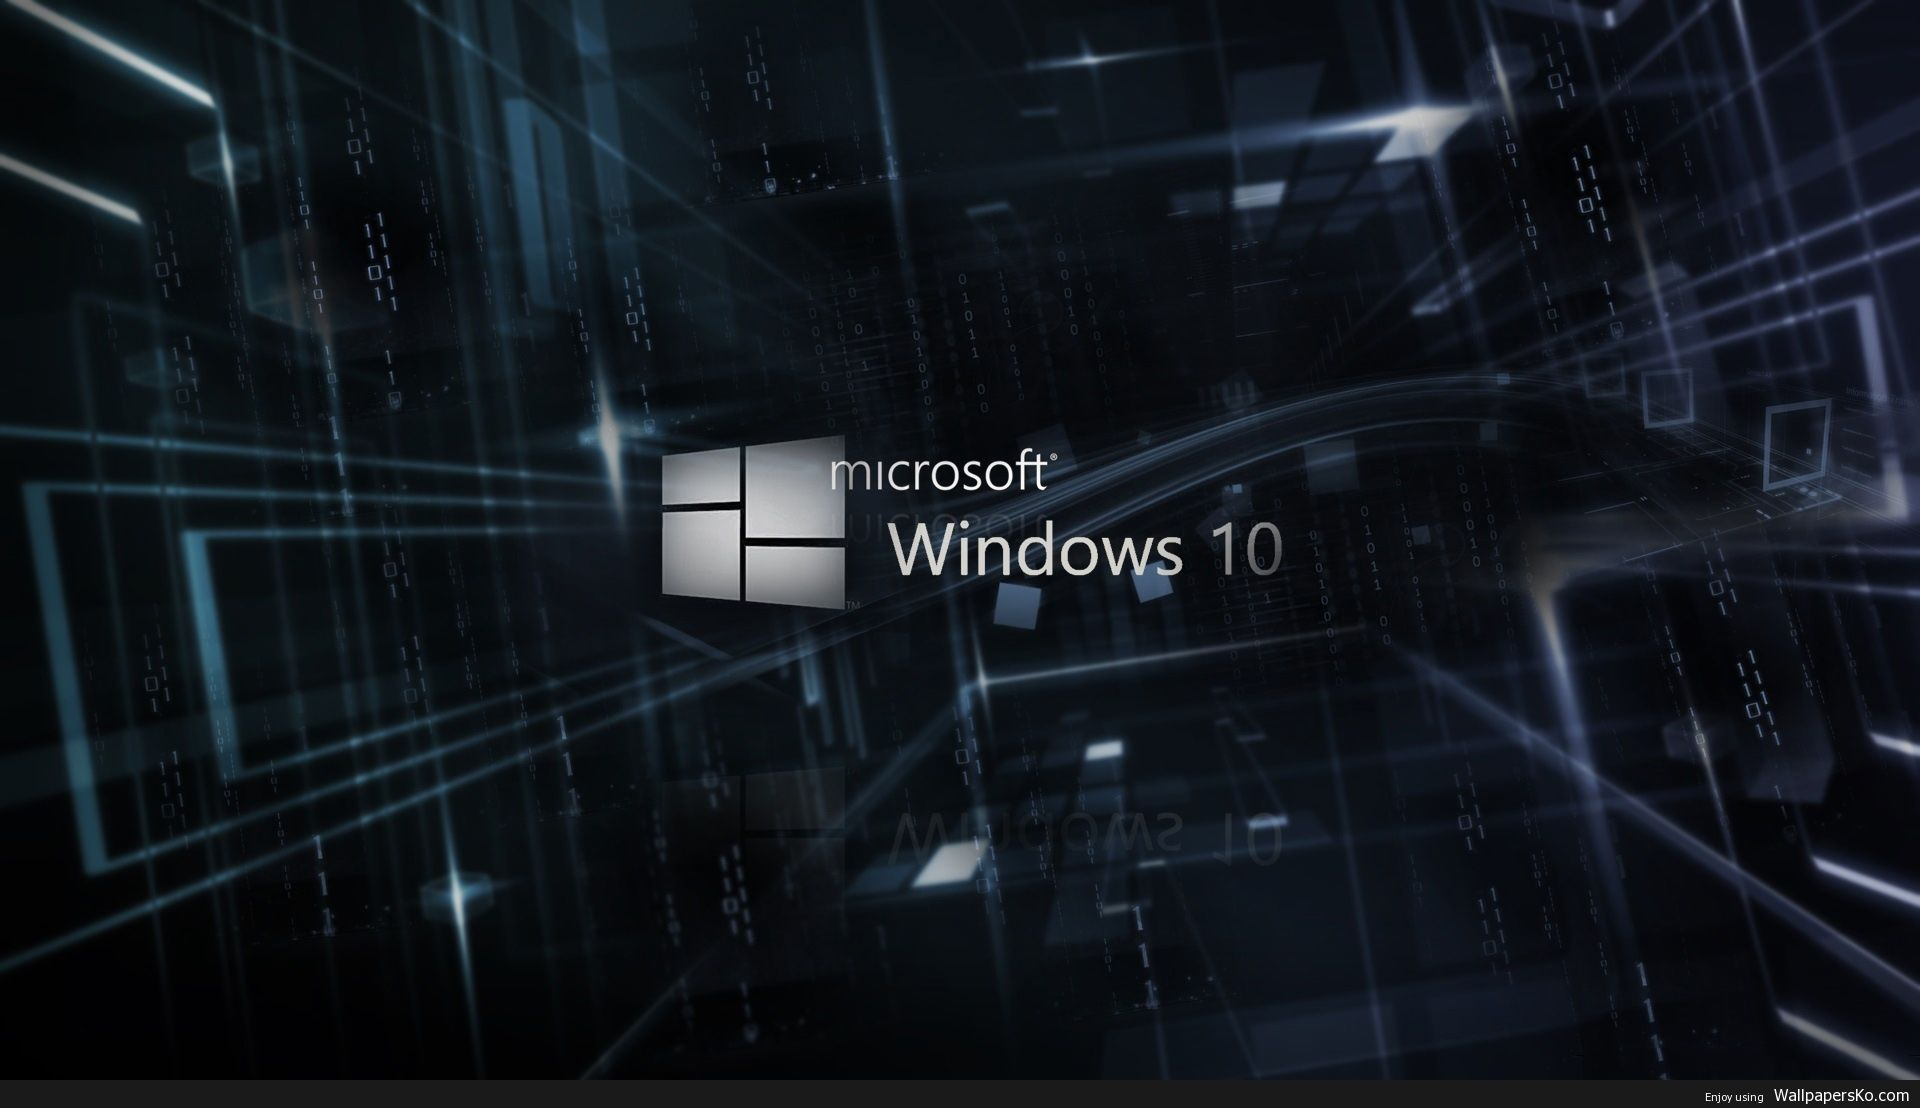 4k Wallpaper Windows 10 Http Wallpapersko Com 4k Wallpaper Windows 10 Html Hd Wallpapers Download Wallpaper Windows 10 Windows 10 Logo Windows Wallpaper